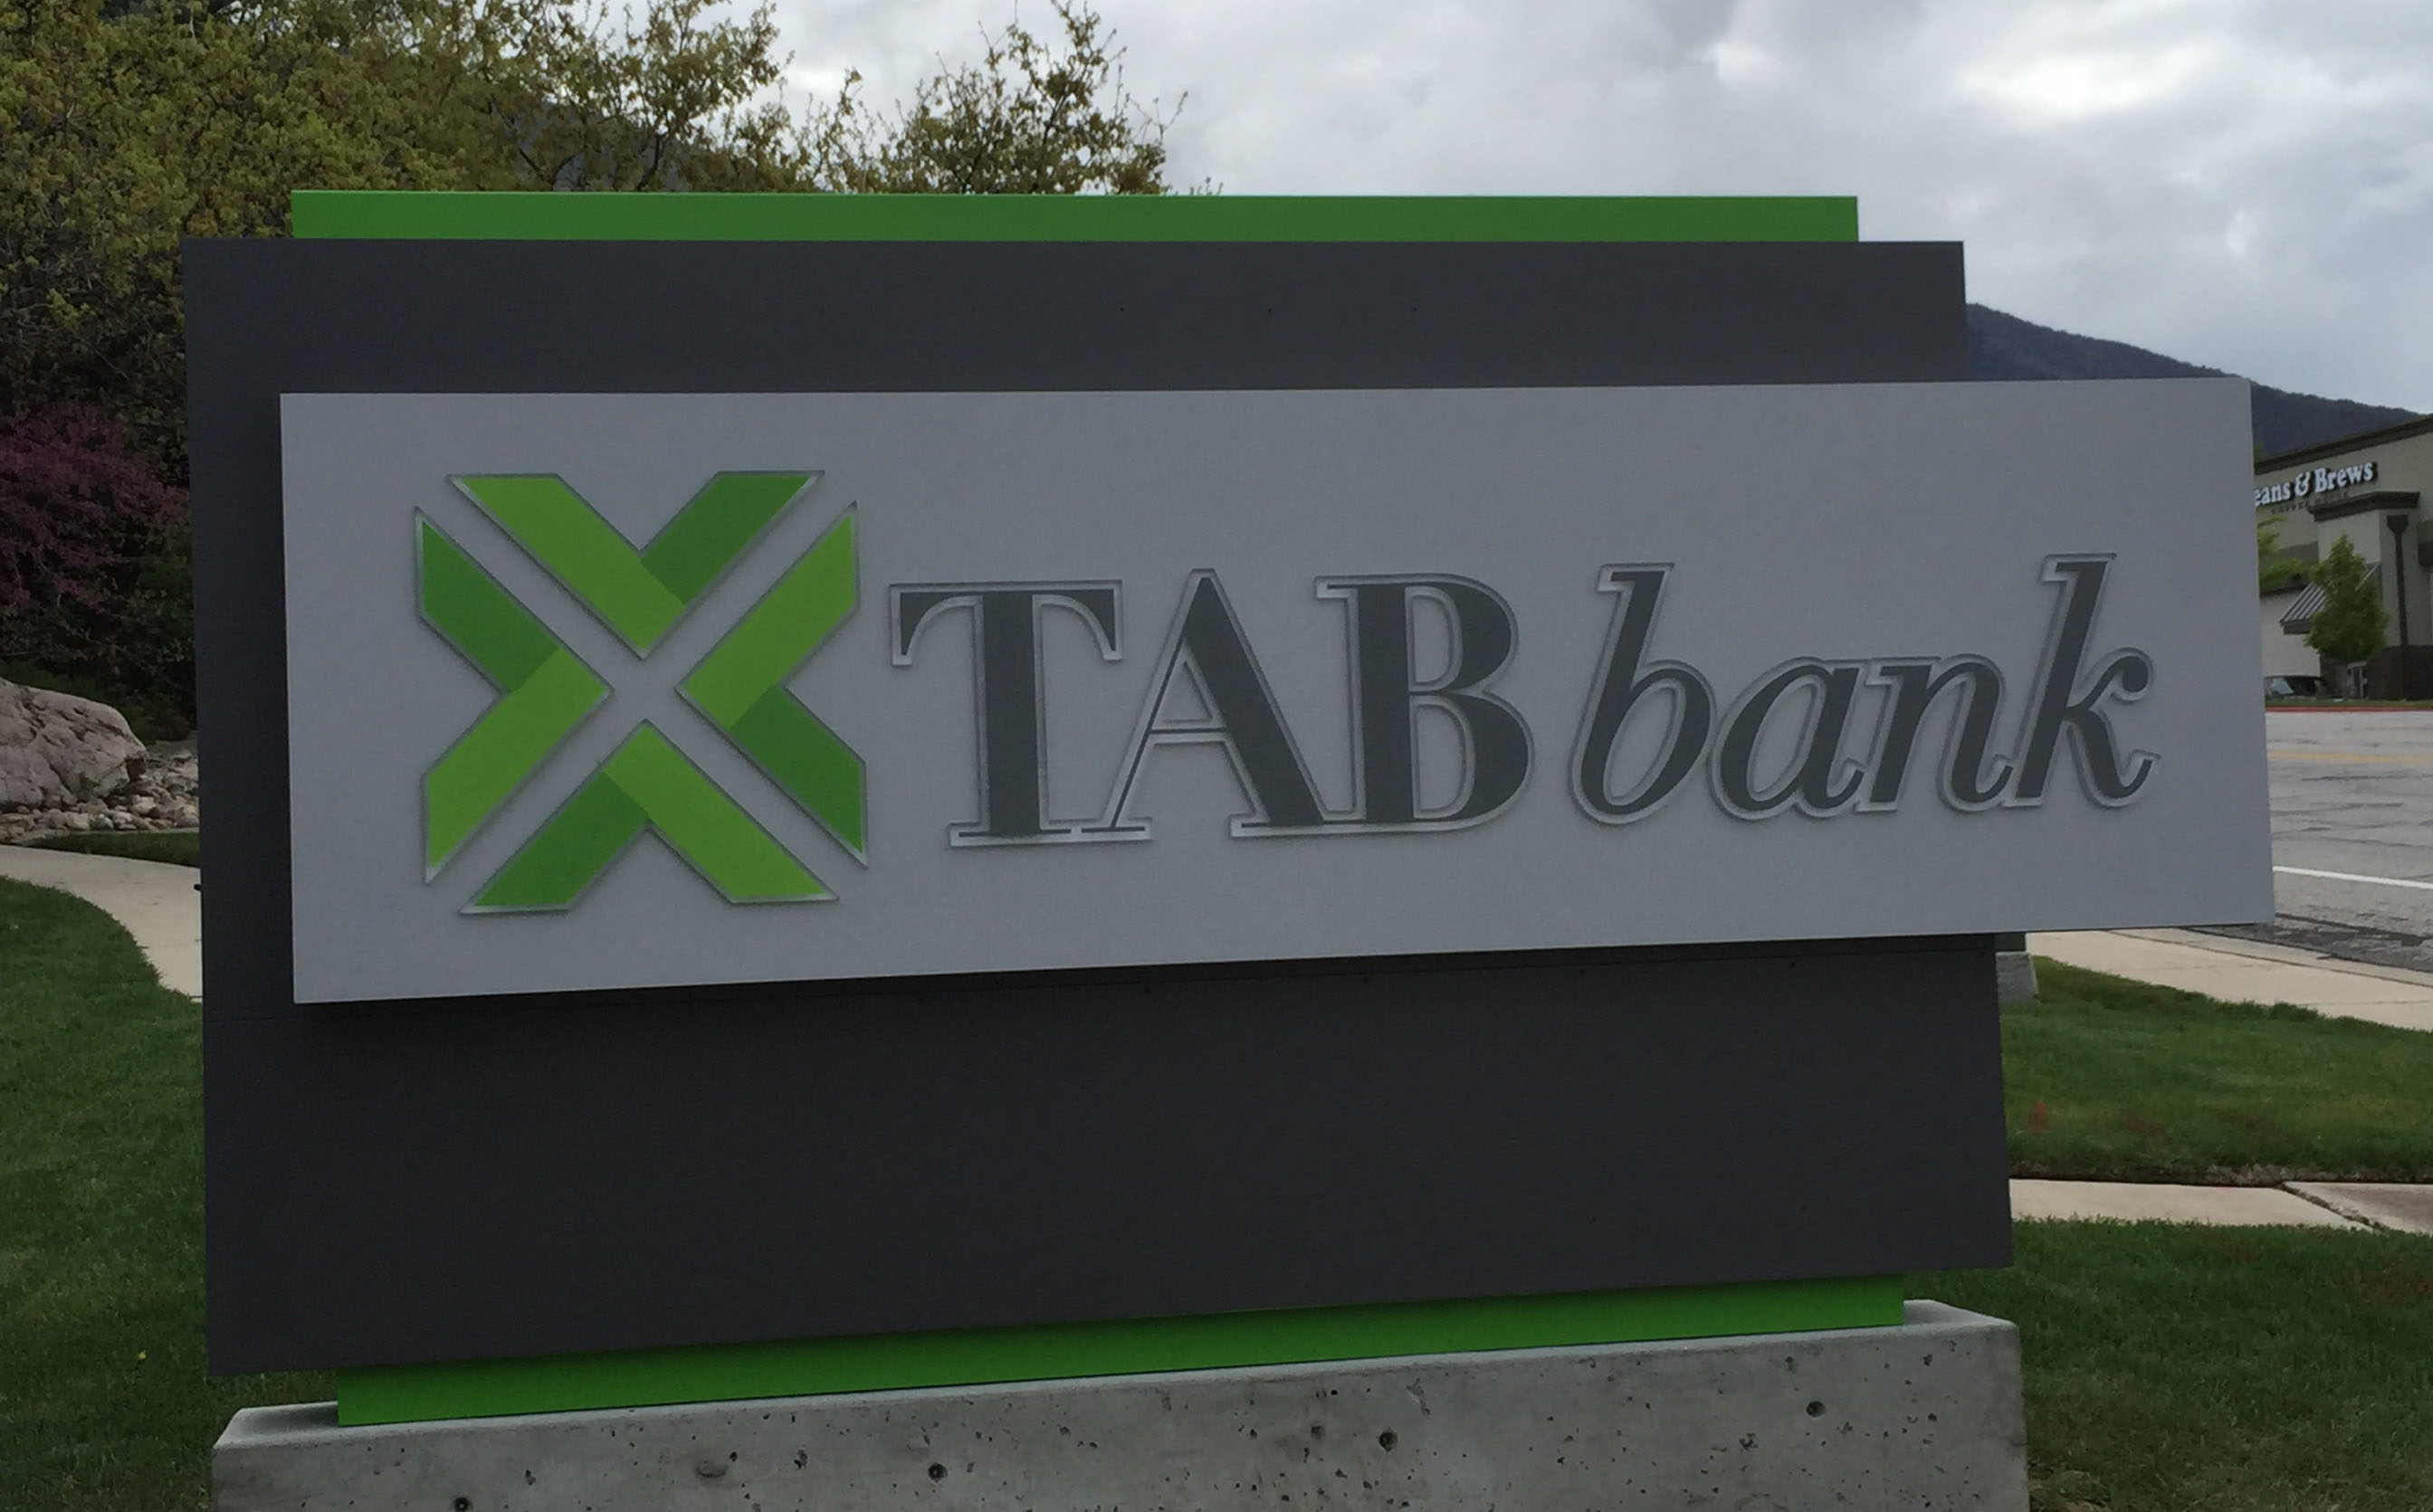 Picture of TAB Bank signage outside of building